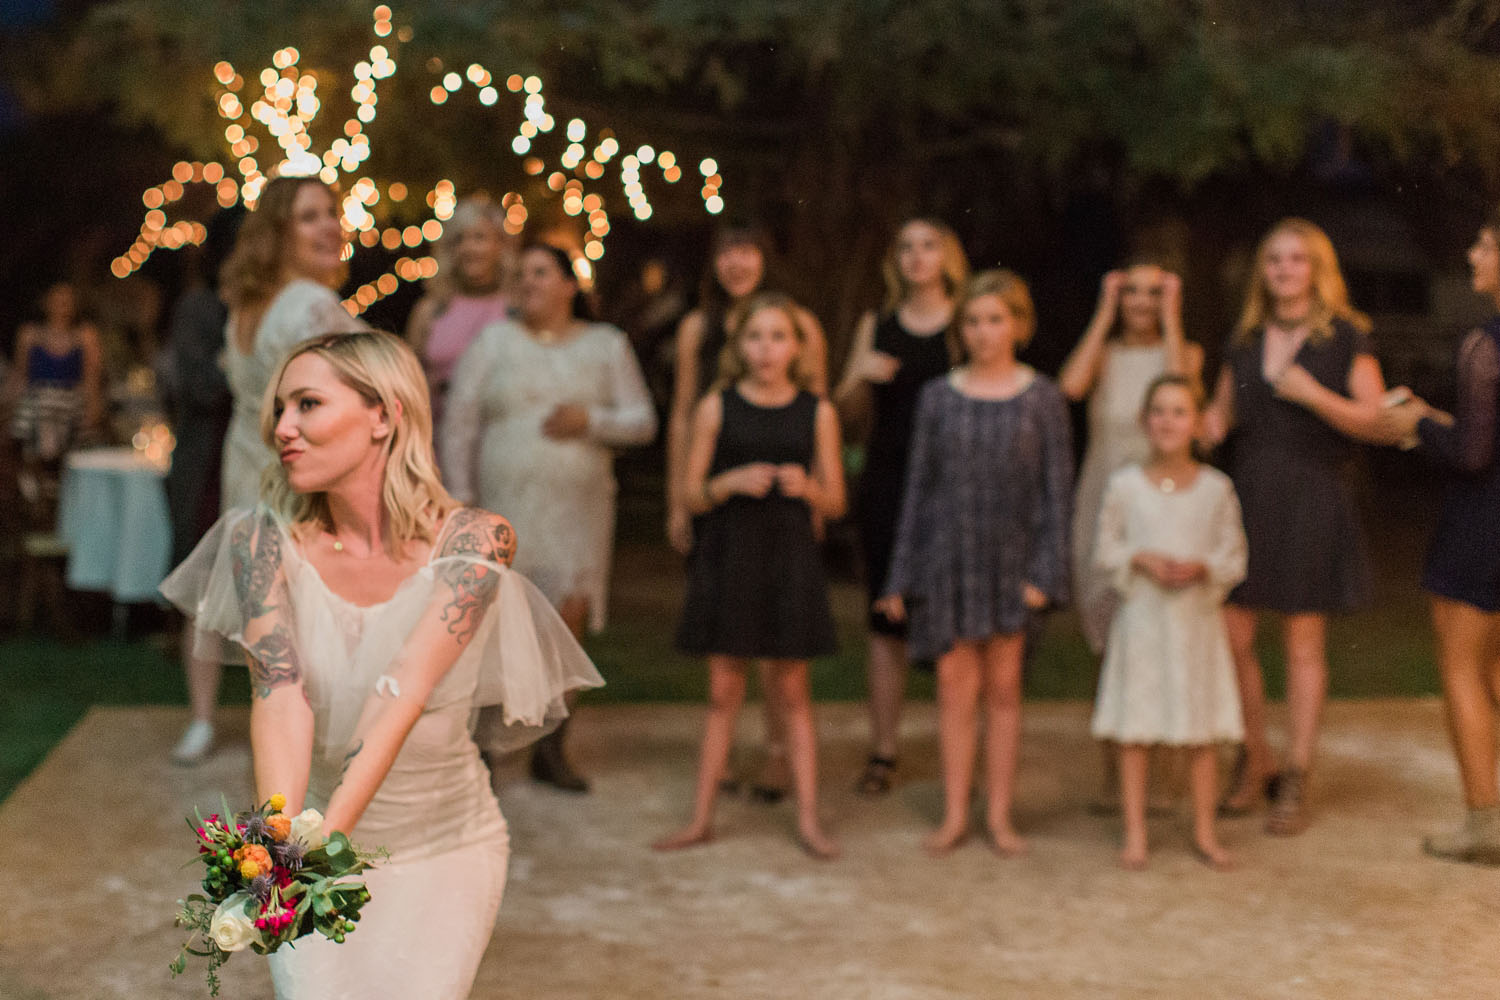 The Photege - Elegant Boho Wedding on Suburu Farm in Bakersfield California- Cassie and Darin Buoni-3083